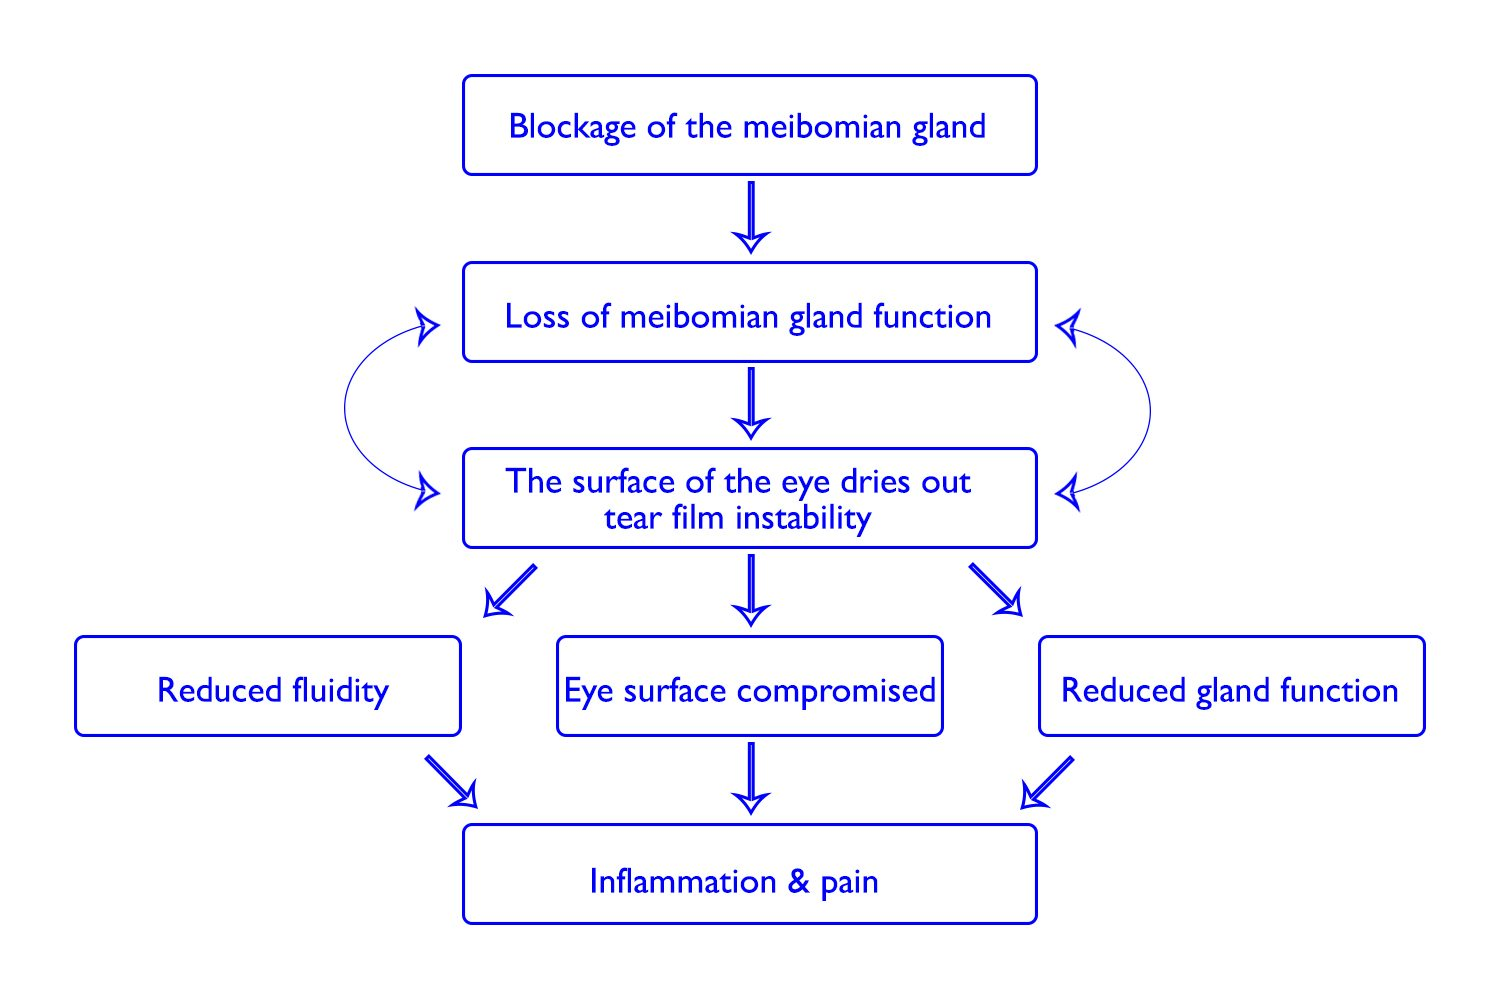 An illustration of how meibomian gland dysfunction develops. Adapted from Pathology of the Meibomian Gland Dysfunction presentation (1).